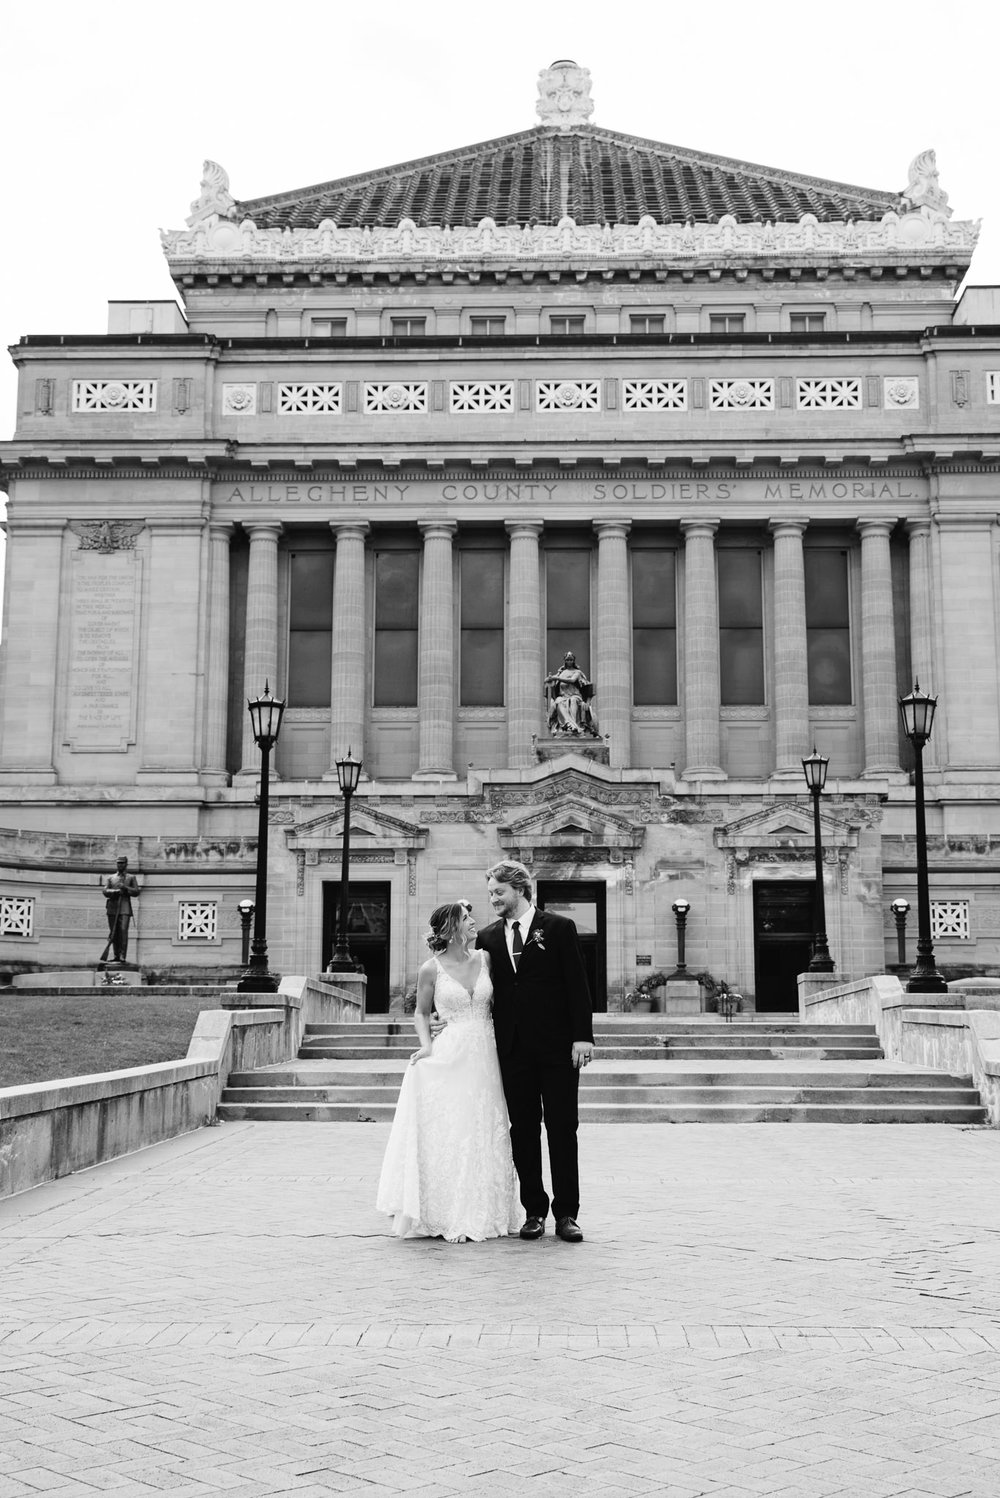 soldiers and sailors museum wedding venue pittsburgh wedding photographer-0746.jpg